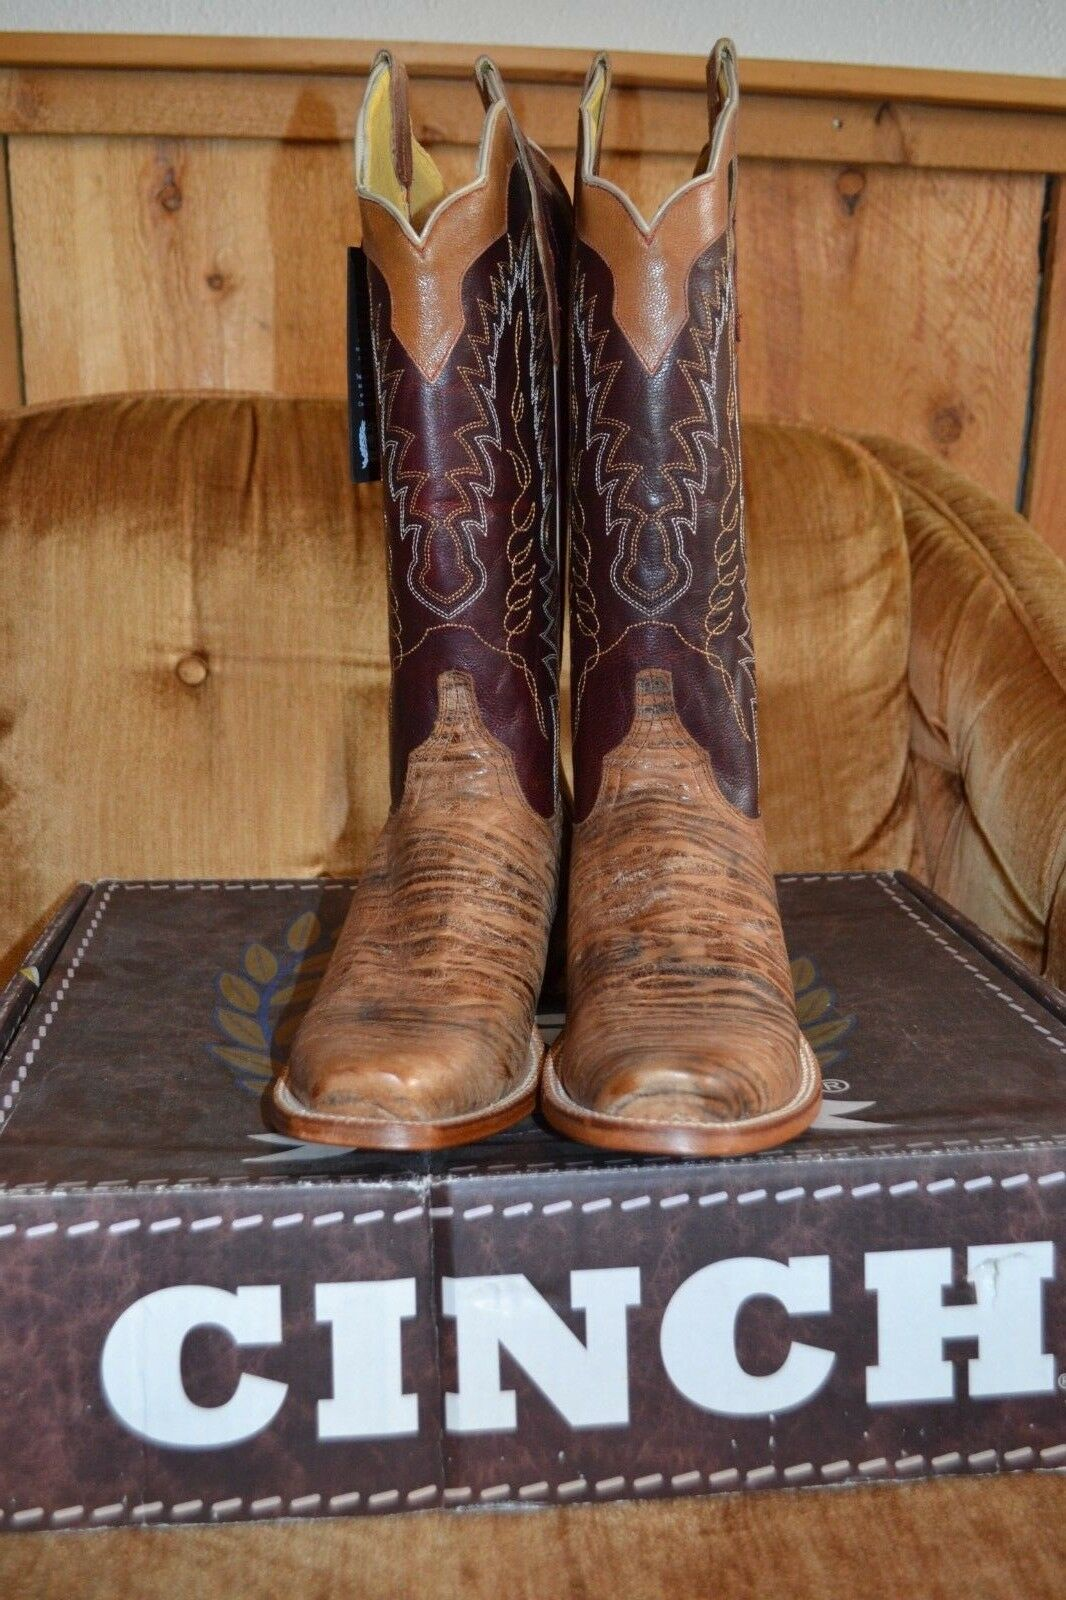 NEW Men's Cinch Cowboy Boots Size 10D Leather Blunt Square T